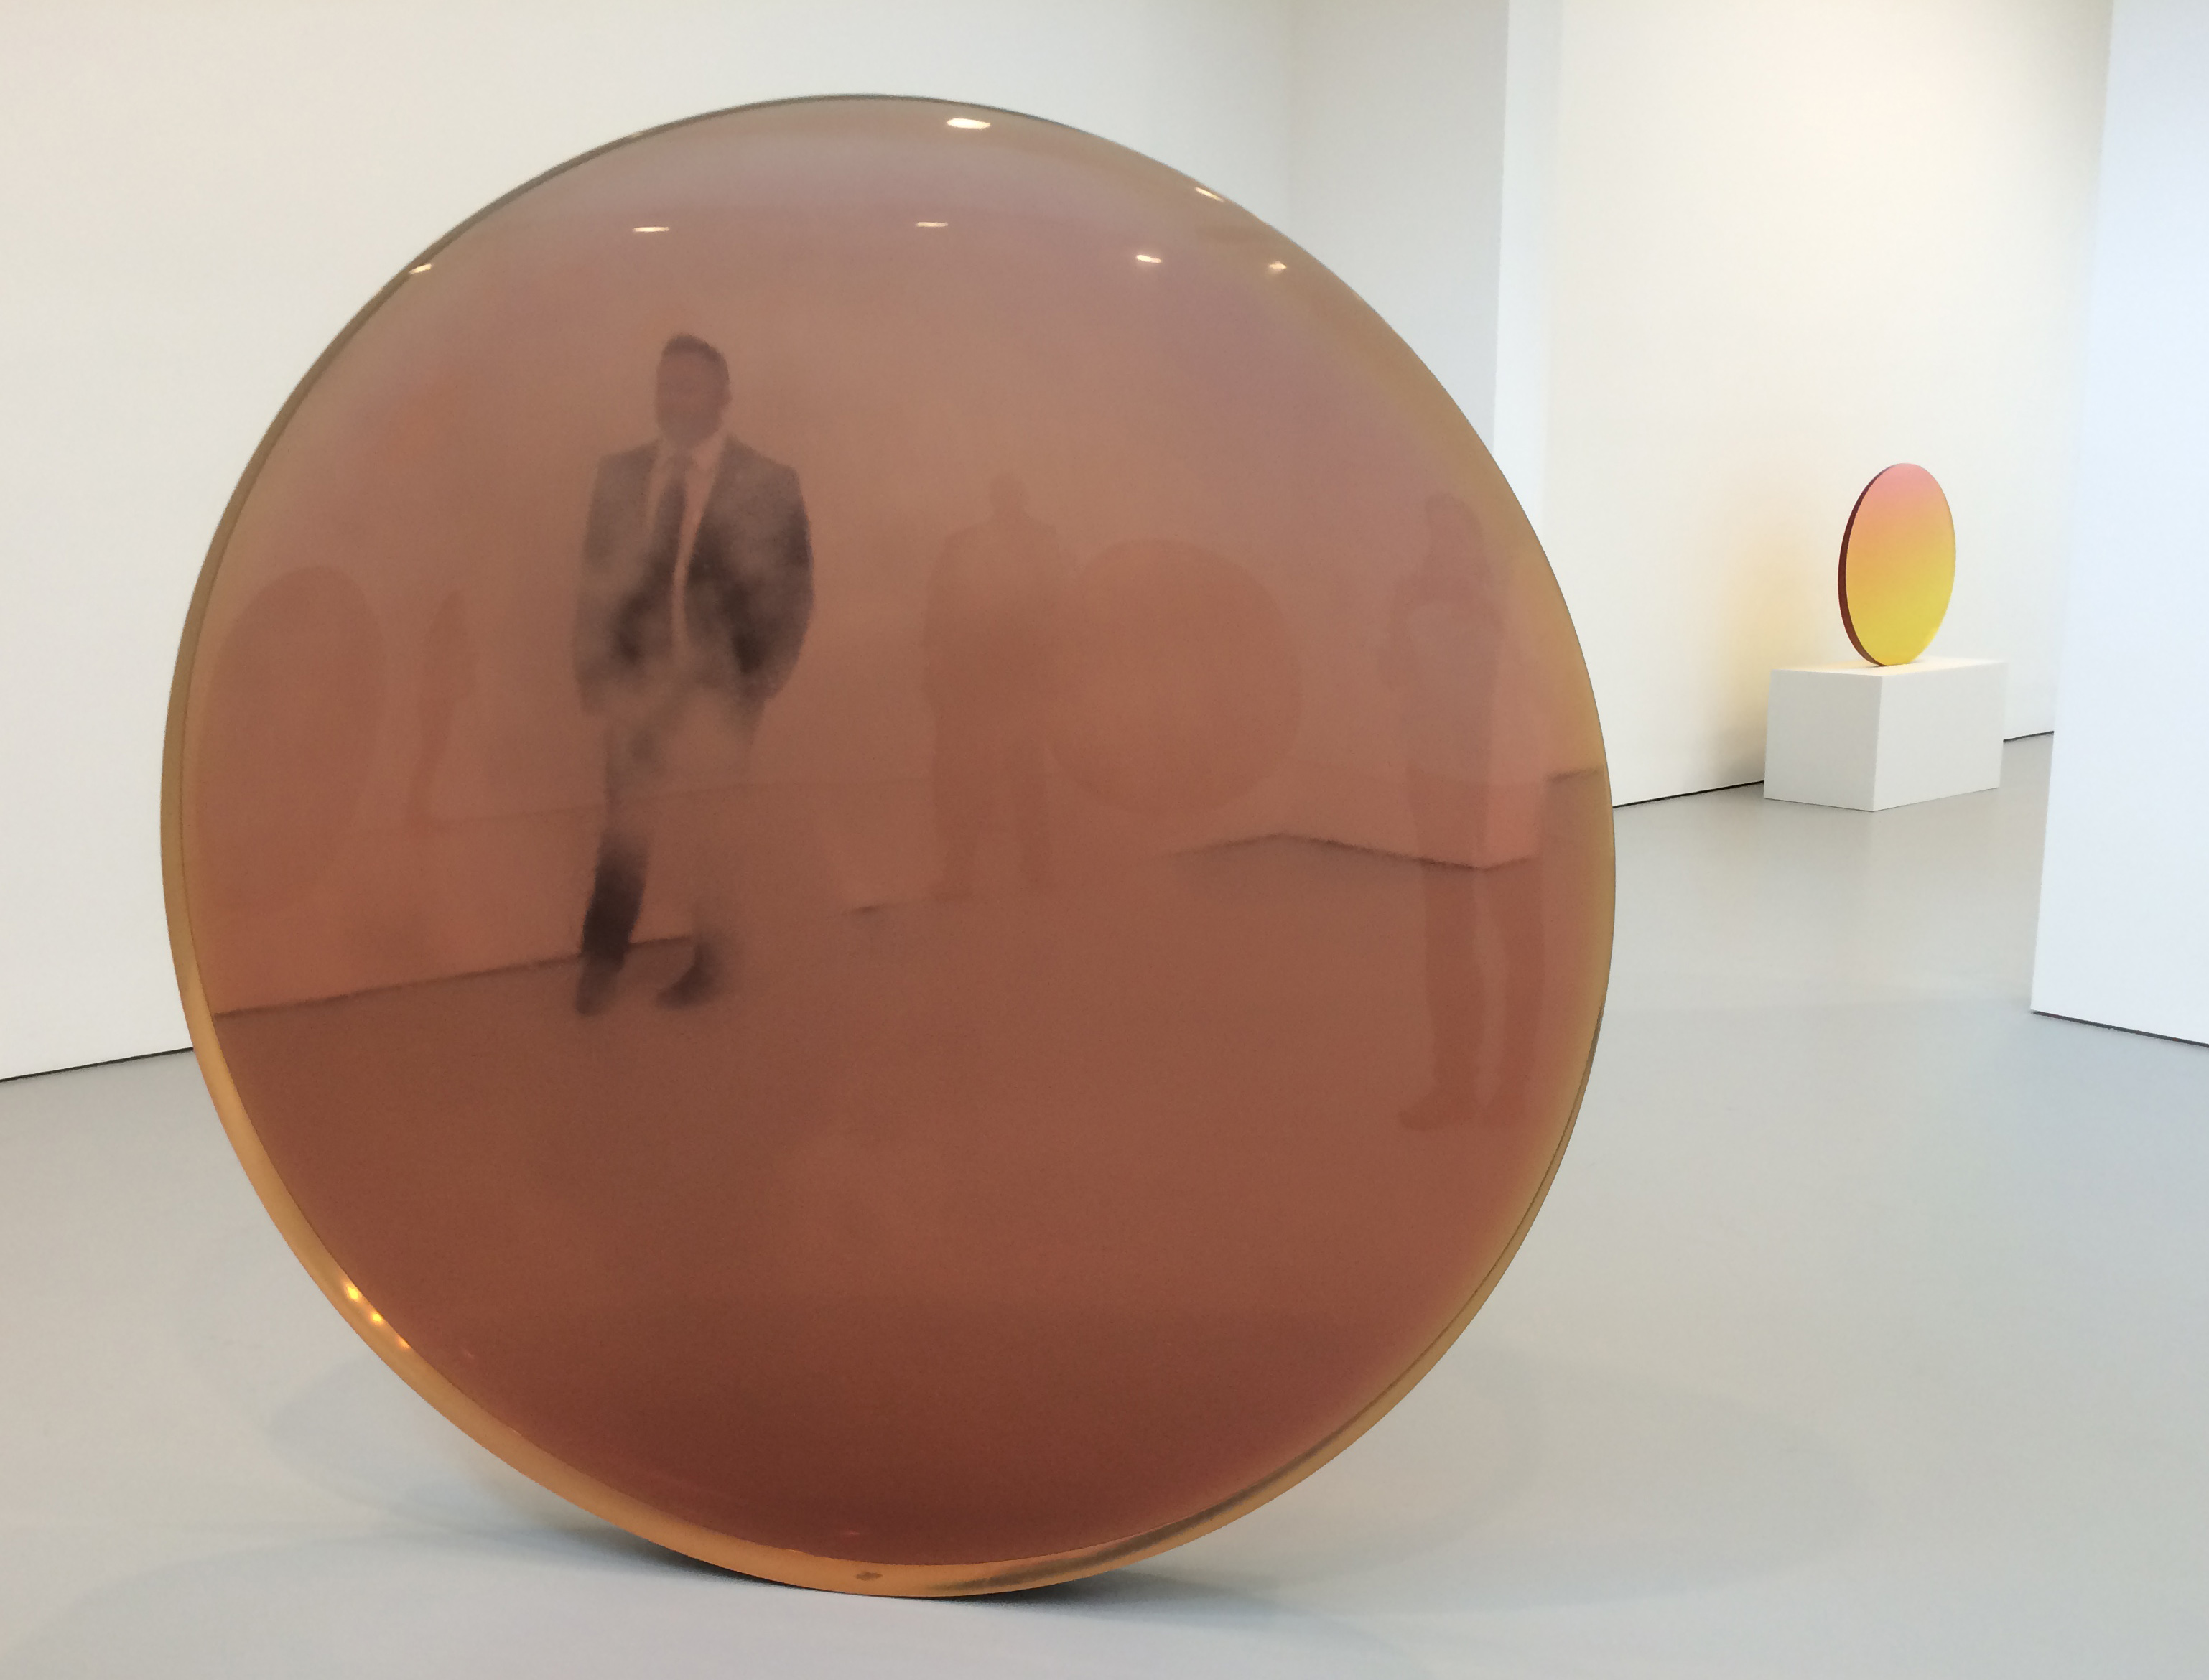 De Wain Valentine, Circle Gold Rose, Cast Polyester Resin, 70 3/8 X 70 X 4  7/8 In, 1970.